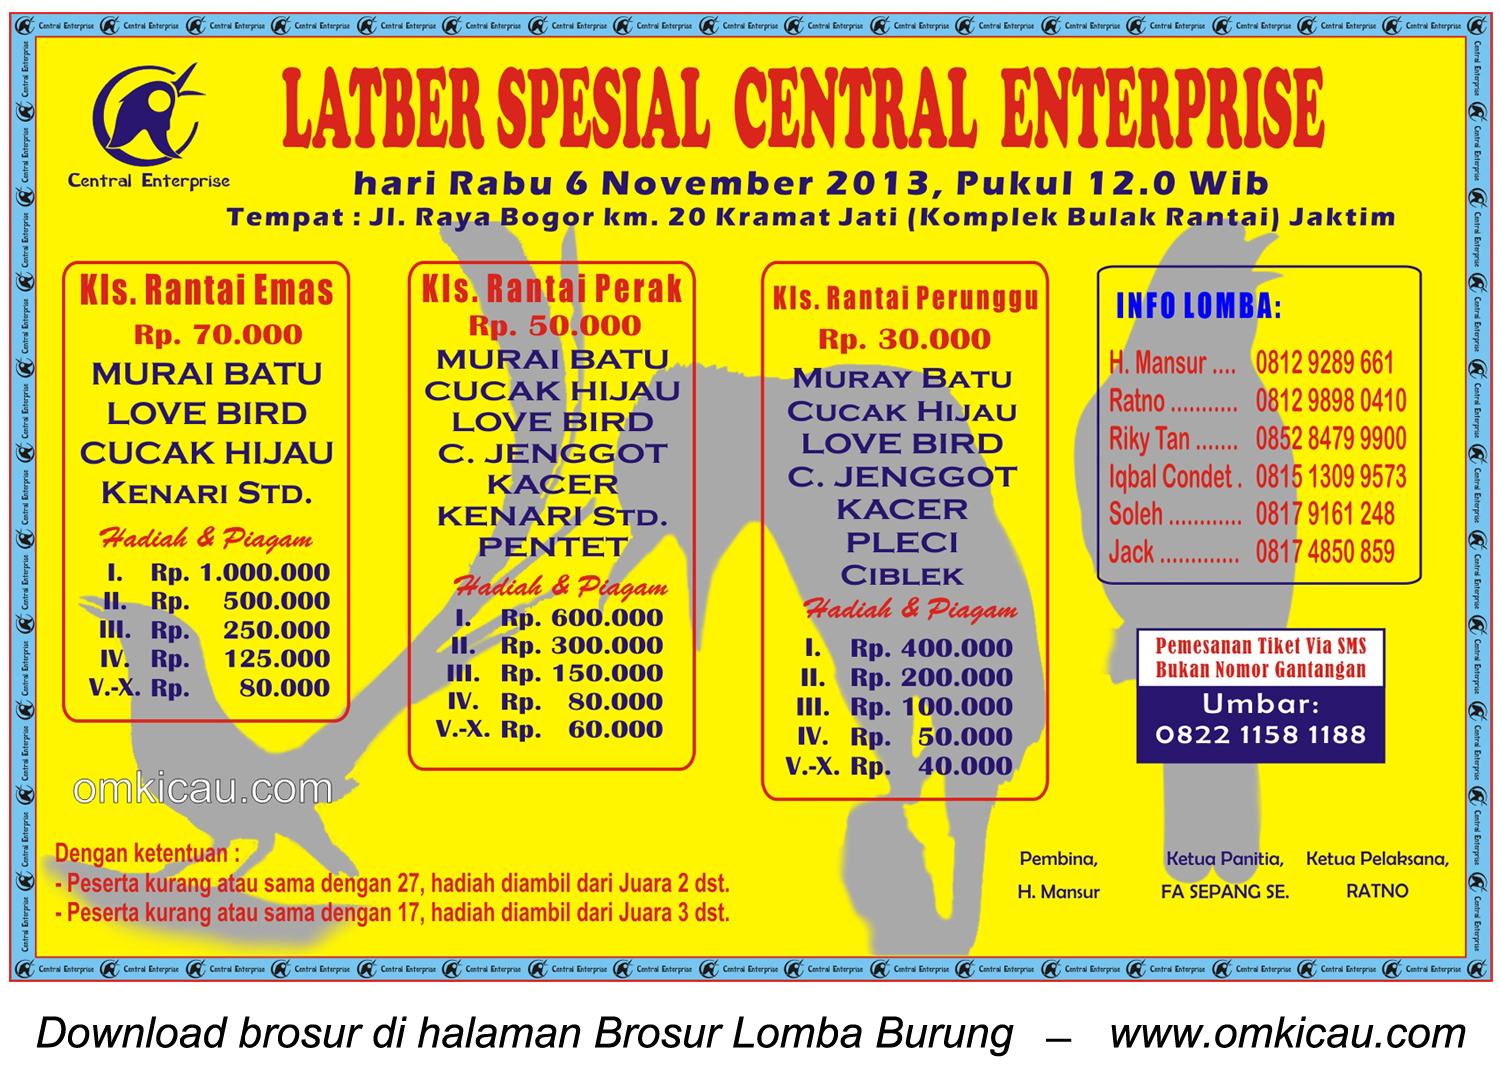 Brosur Latber Spesial Central Enterprise, Jakarta, 6 November 2013